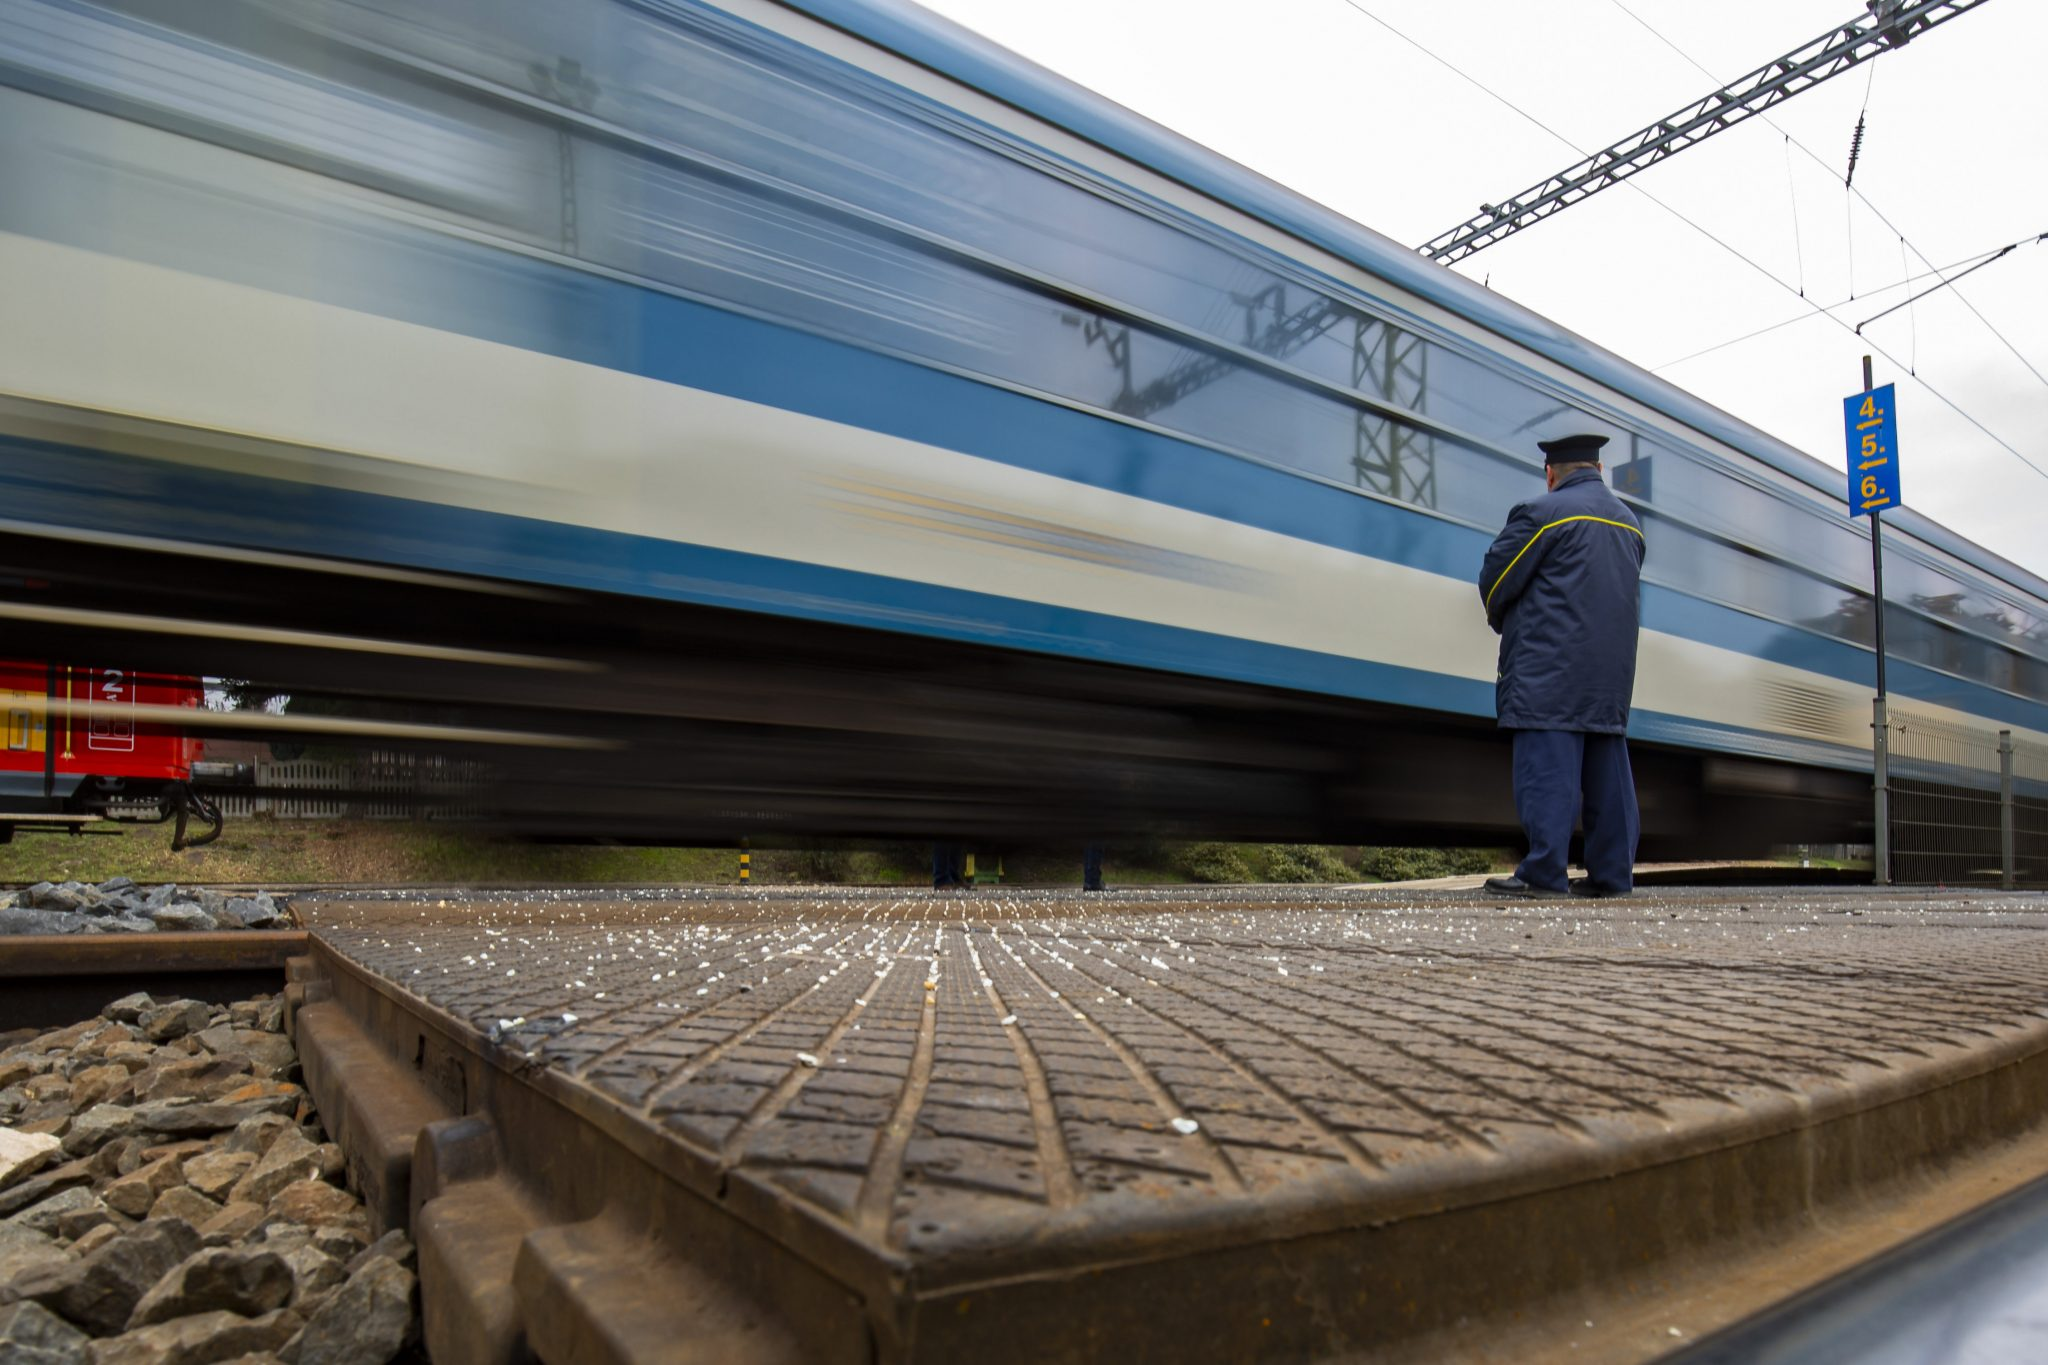 Hungary to Invest Eur 5.6 Bn in Railway Upgrades Around Budapest in 20 Years